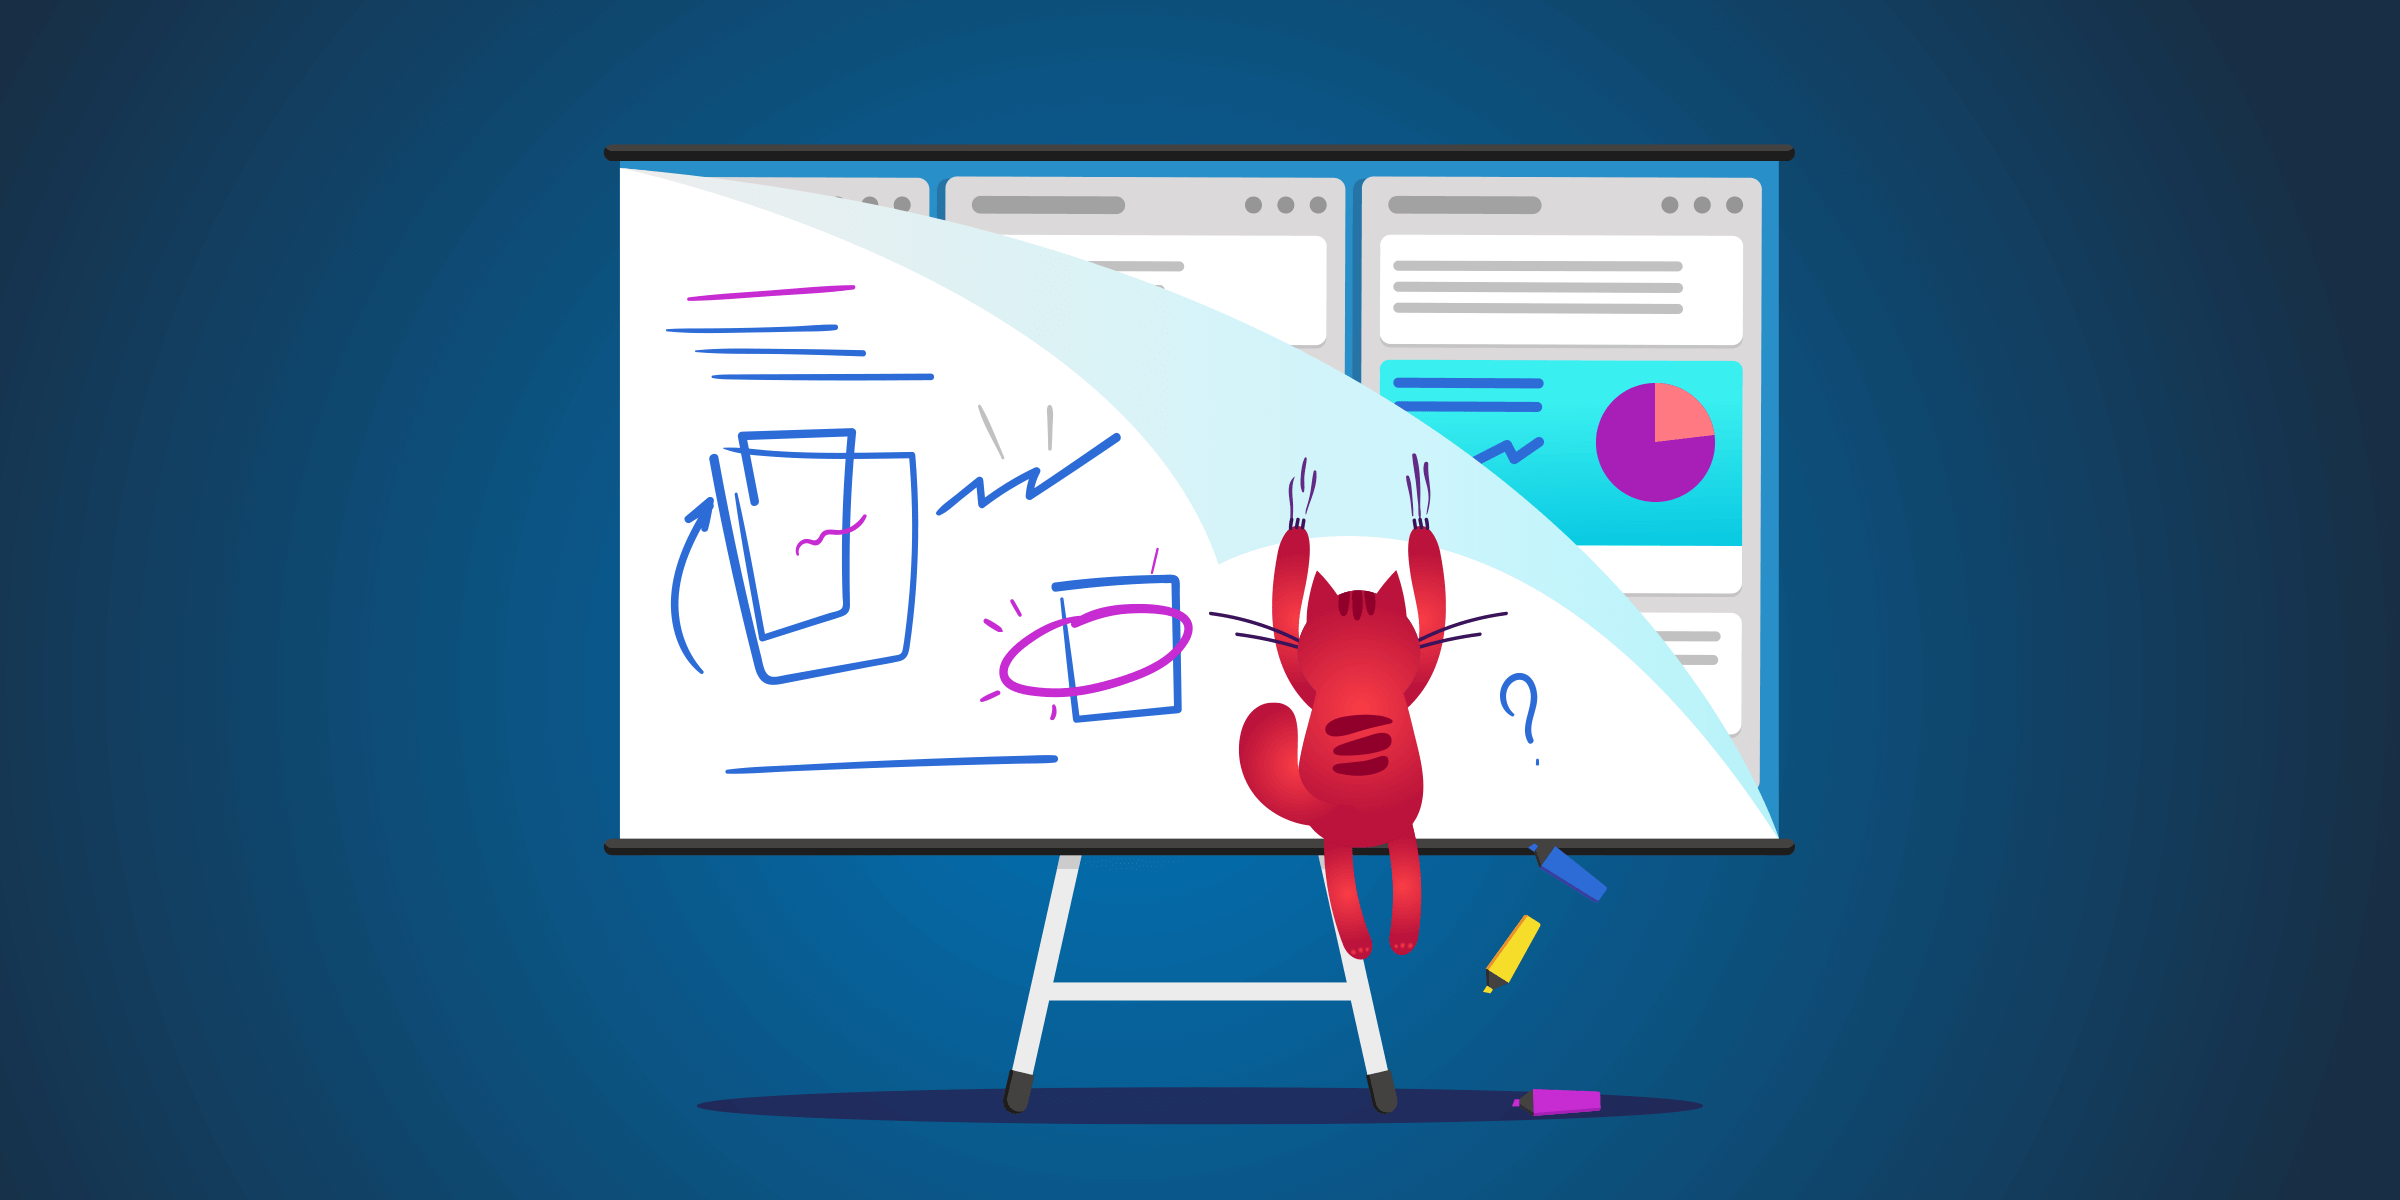 3 Ways Trello Will Change How Your Distributed Team Brainstorms